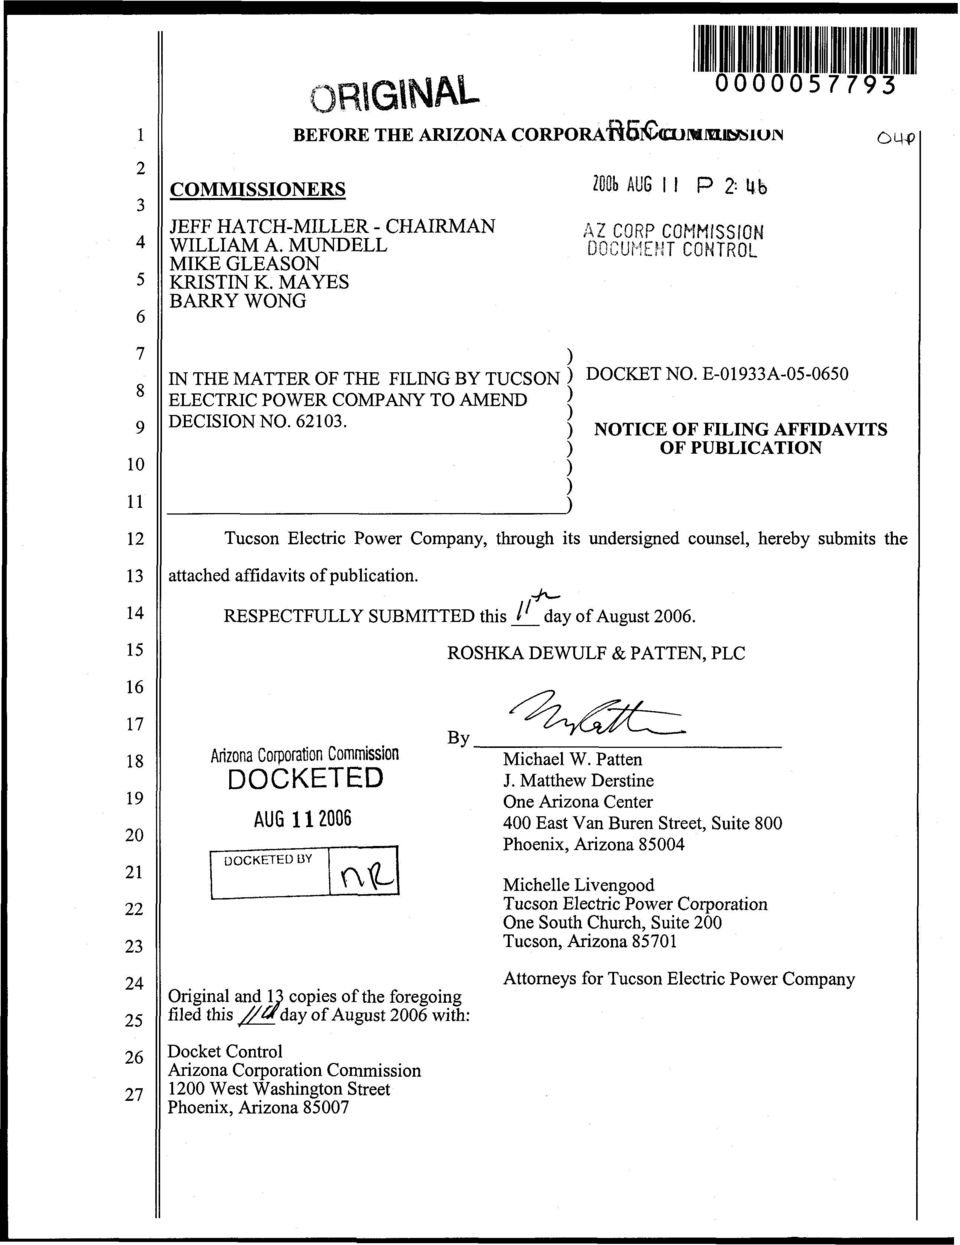 todb BUG i I P : b DOCKET No* E-019A-05-0650 ) NOTICE OF FILING AFFIDAVITS ) OF PUBLICATION Tucson Electric Power Company, through its undersigned counsel, hereby submits the attached affidavits of